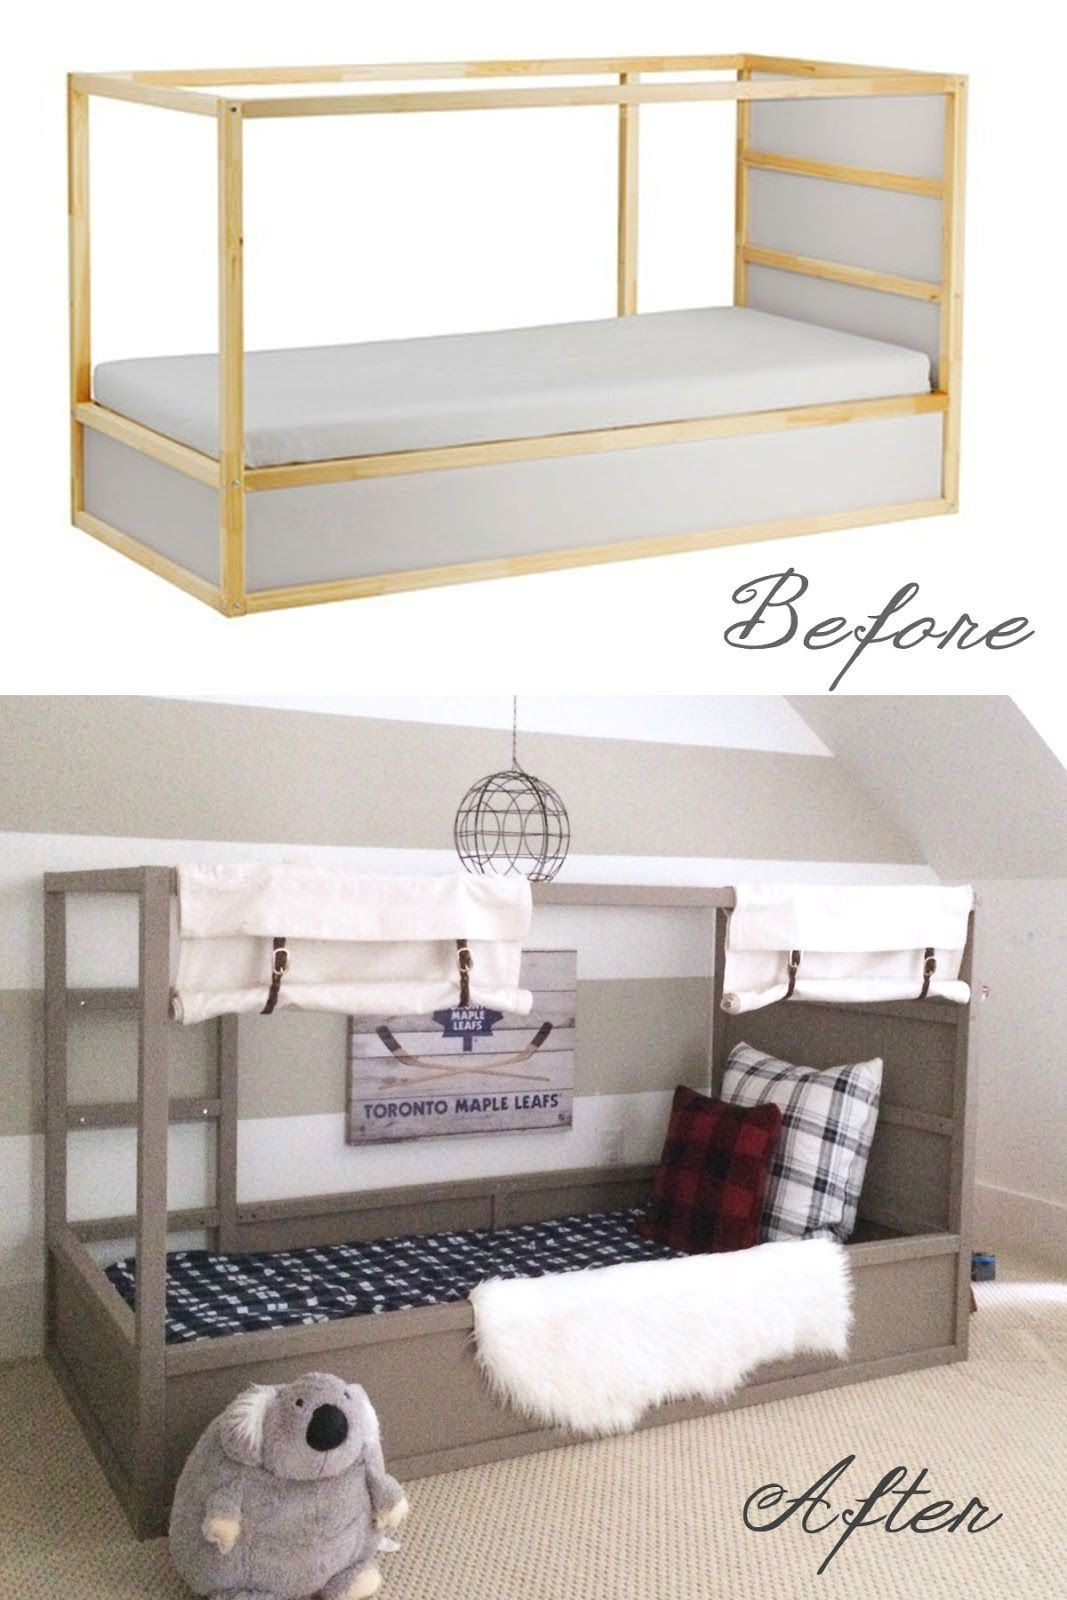 Ikea Schlafzimmer Kinder Ikea Kura Bed Hack Option 2 With Diy Ball Fischer Pinterest Ikea Schlafzimmer Kinder Ikea Schlafz Ikea Kura Bed Kura Bed Ikea Bed